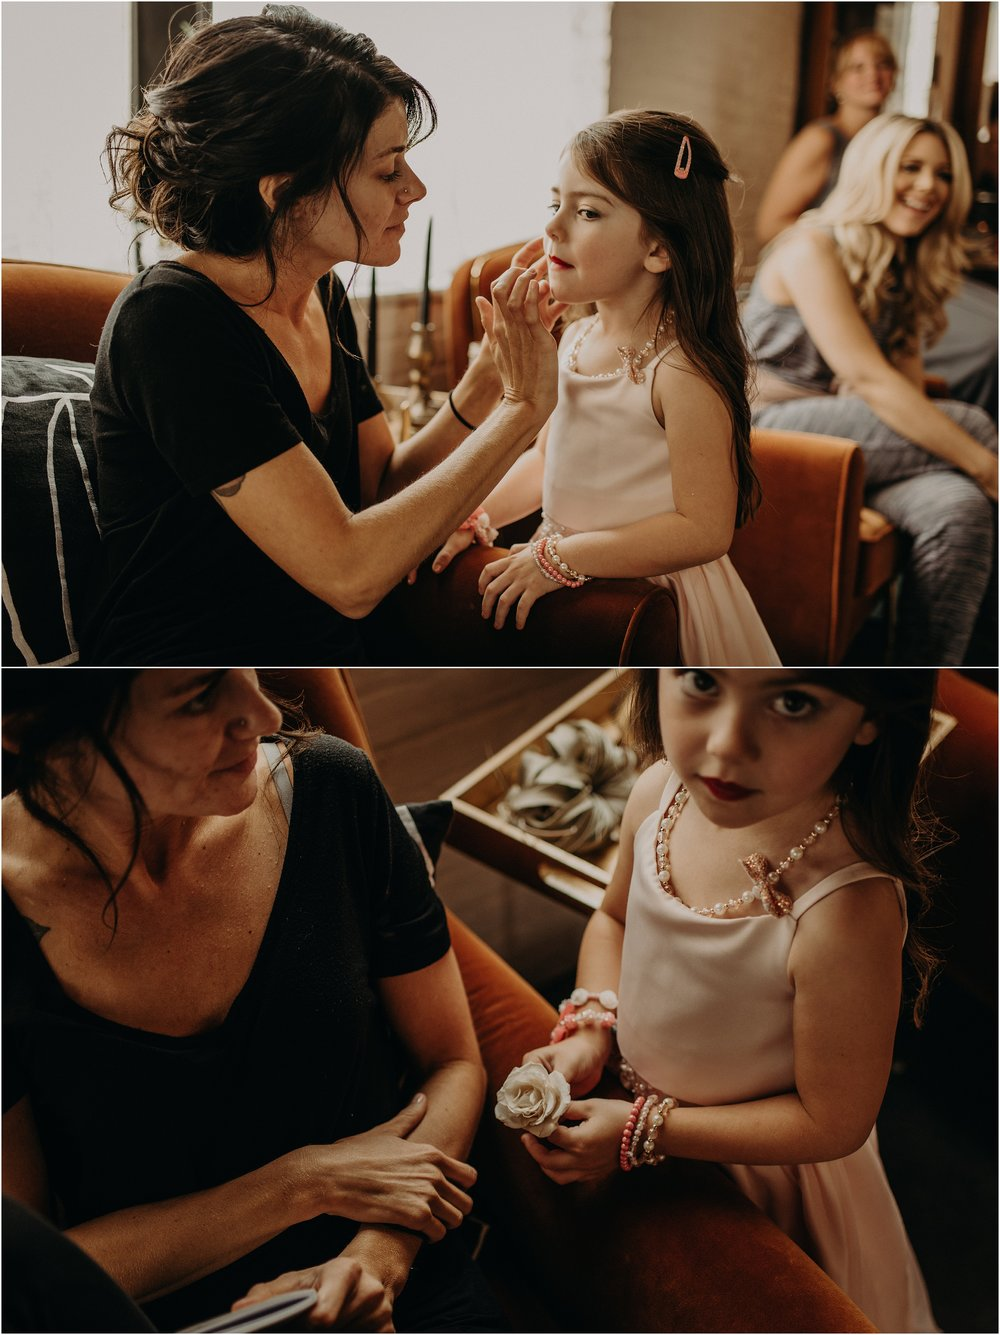 Mom applies lipstick on her daughter